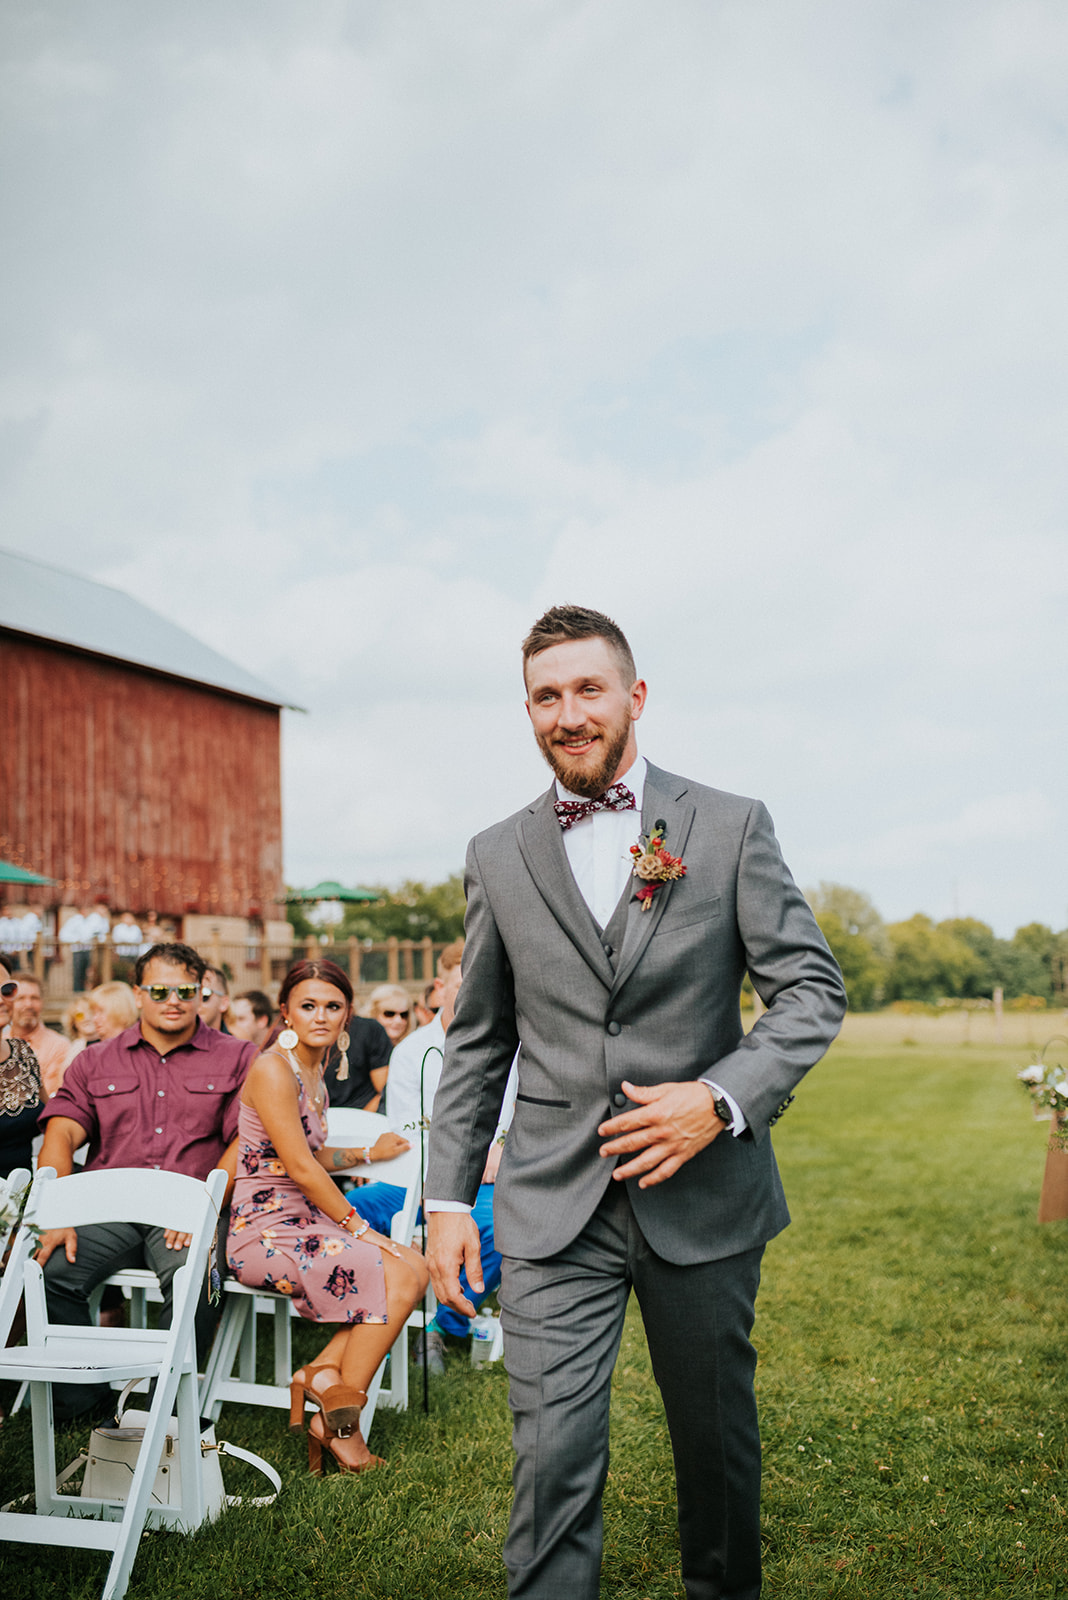 overthevineswisconsinwedding_0568.jpg